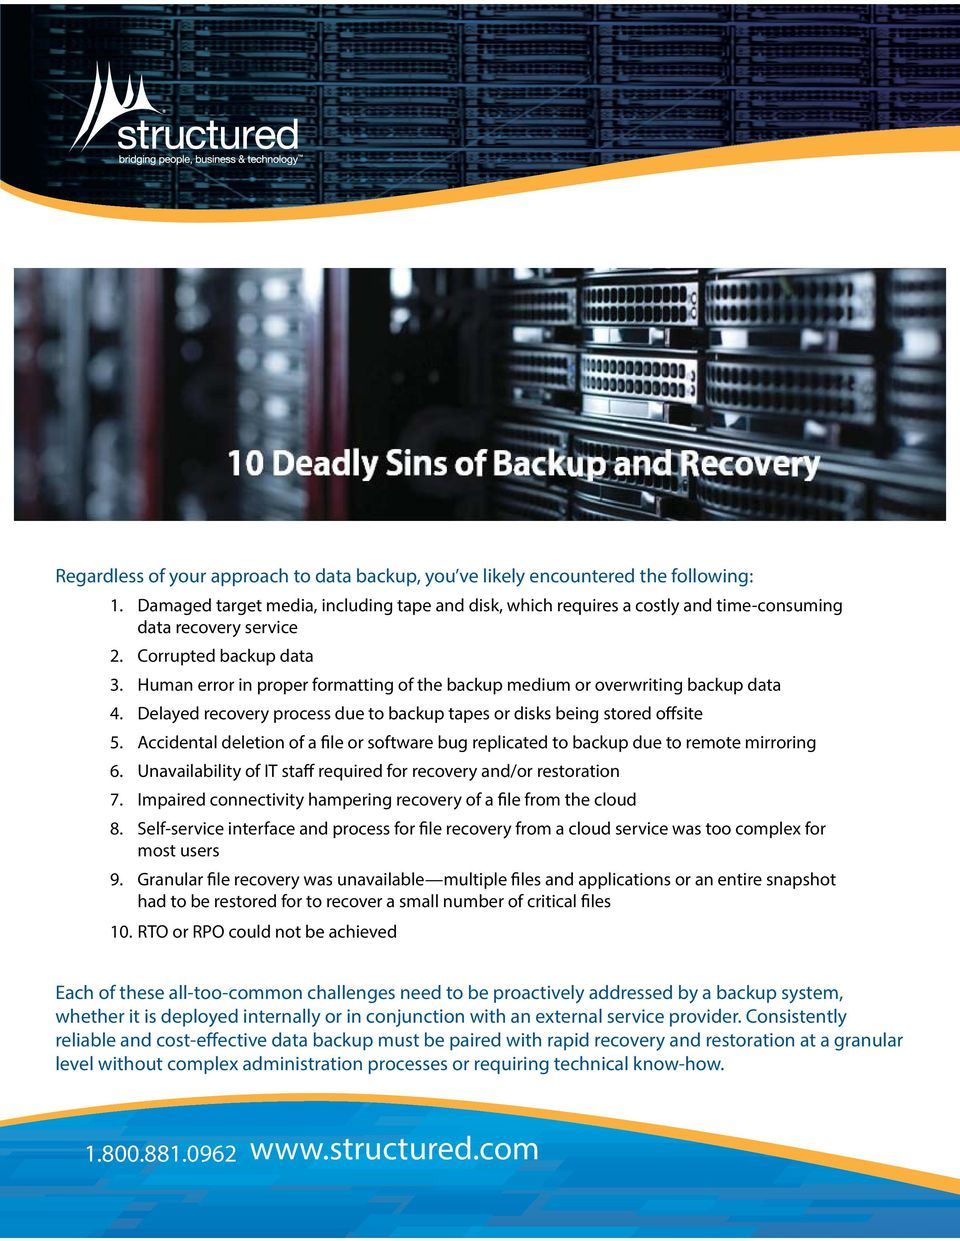 Human error in proper formatting of the backup medium or overwriting backup data 4. Delayed recovery process due to backup tapes or disks being stored offsite 5.